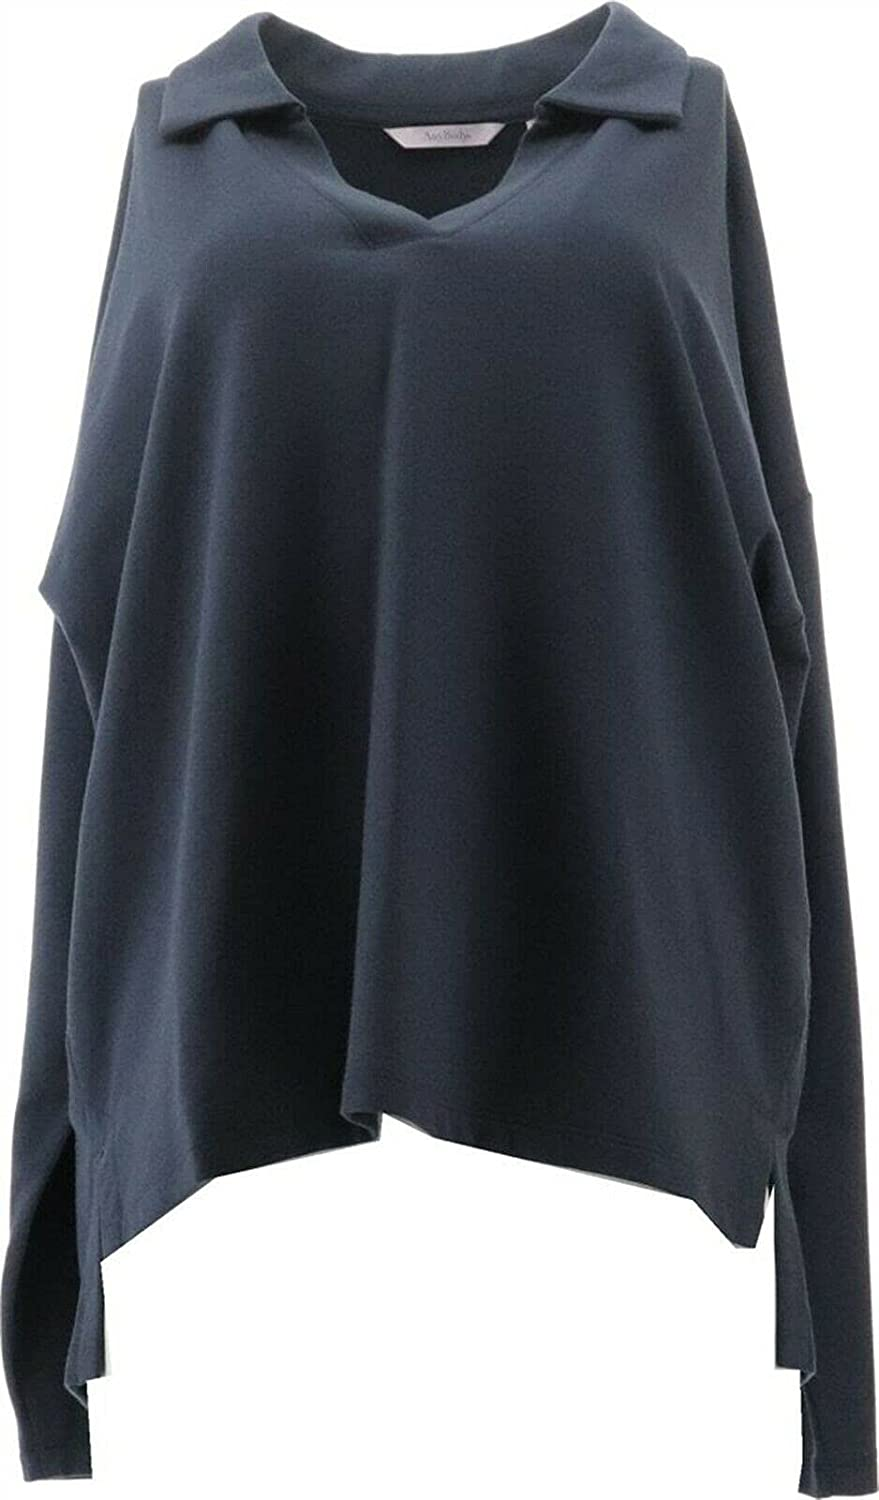 AnyBody Cozy Knit French Terry Collared Pullover A393059